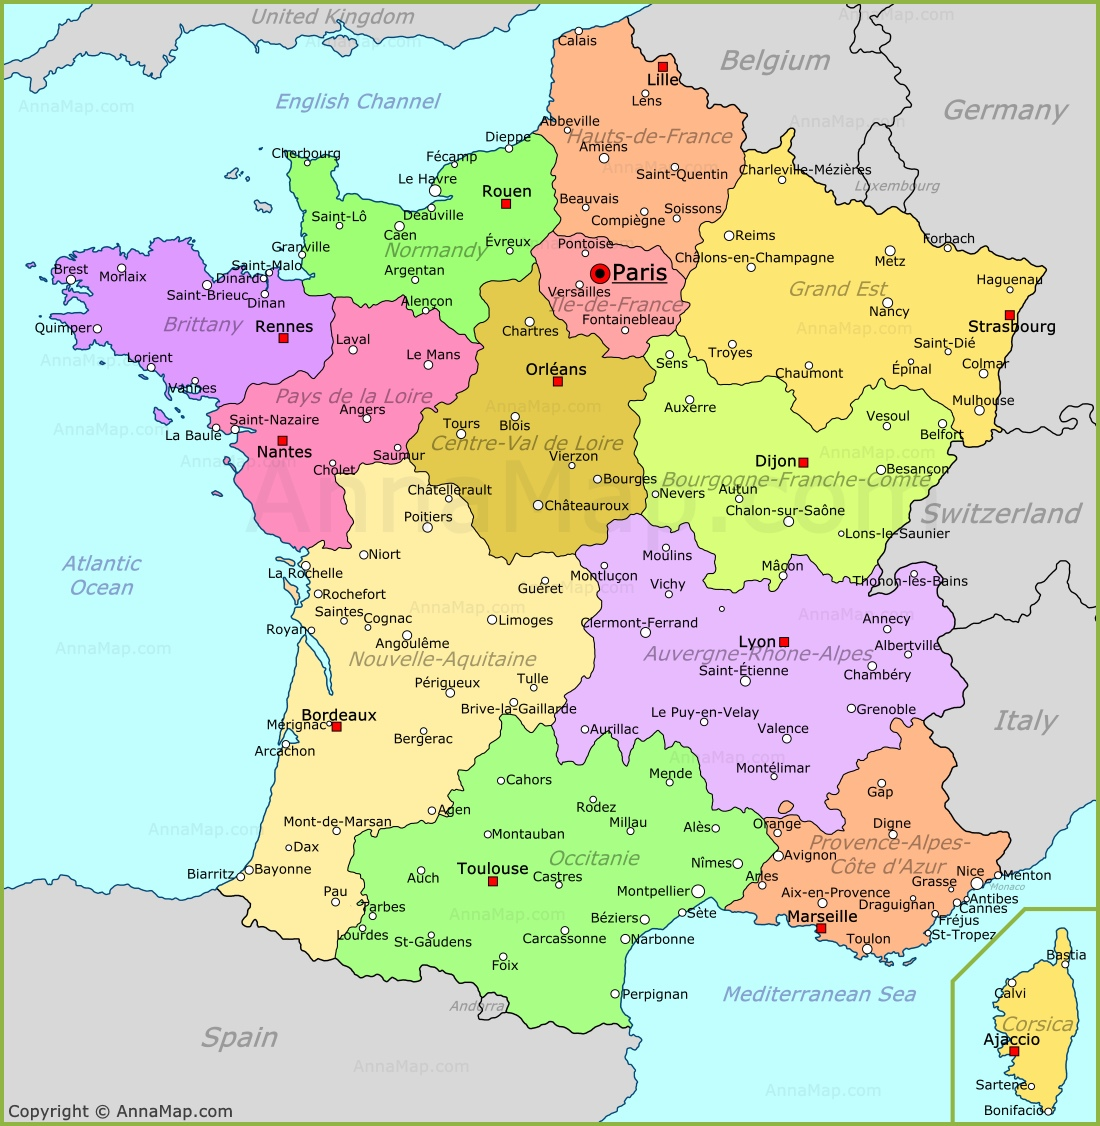 France Map | Map of France - AnnaMap.com